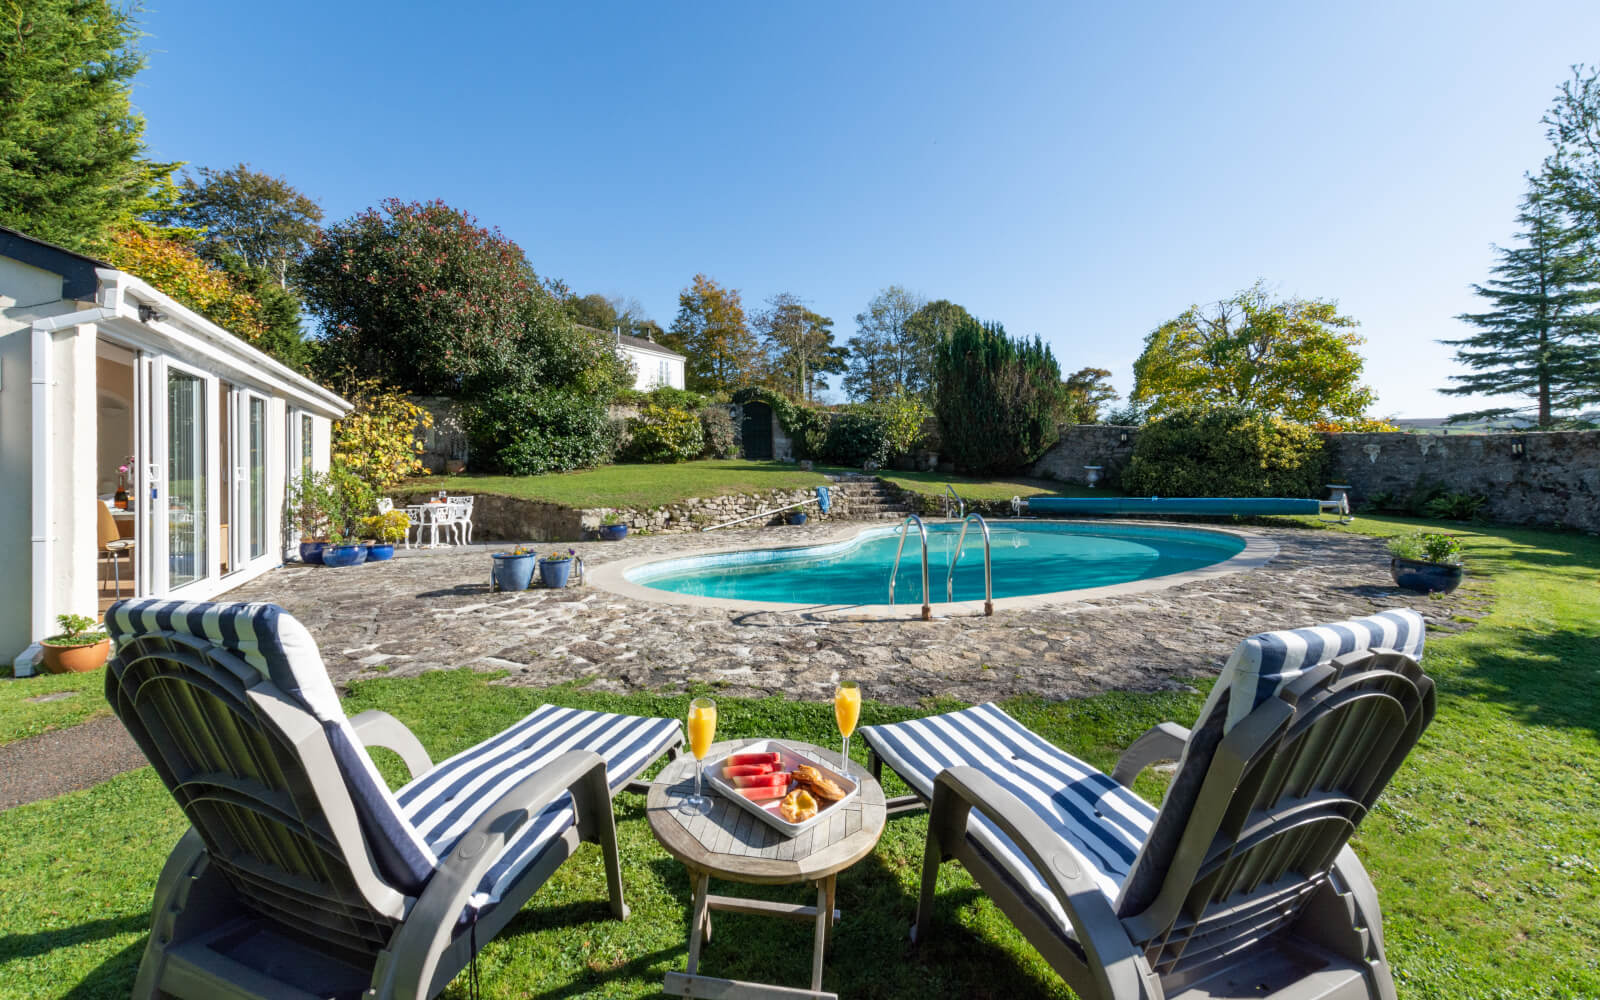 Holiday Cottages With Swimming Pools In South Norfolk District To Rent - Save up to 60%